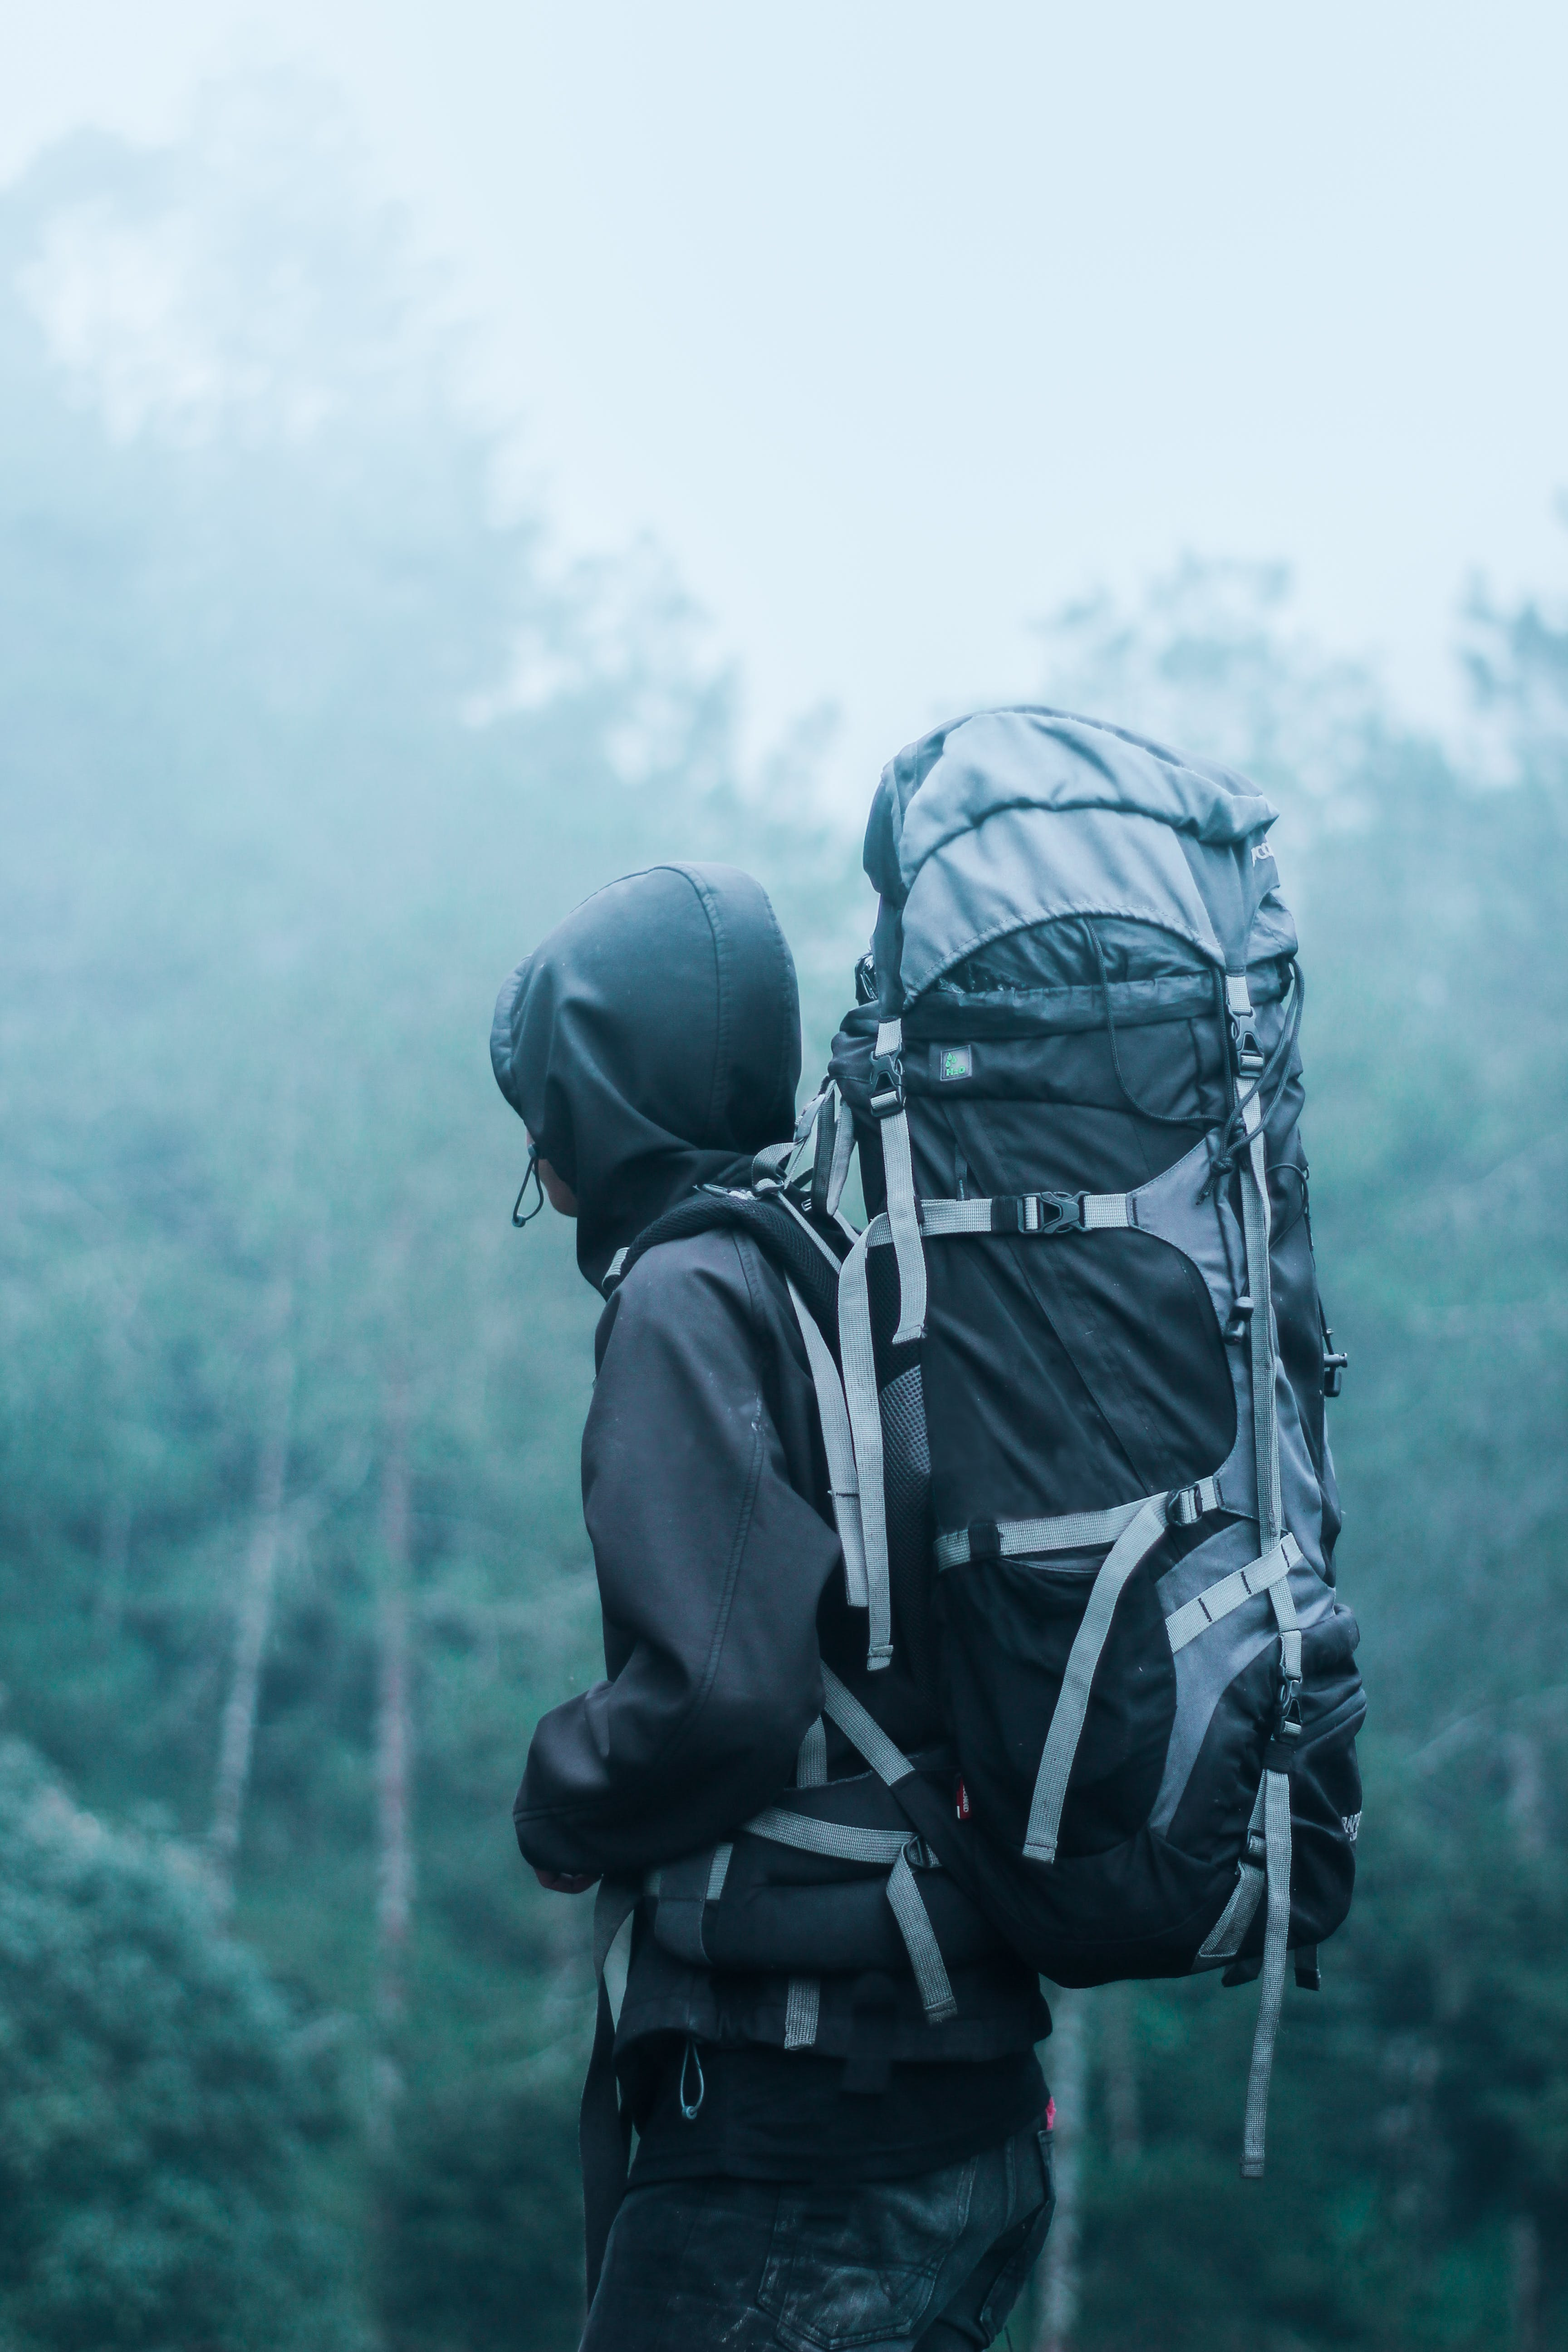 Man Wearing Black Hoodie Carries Black and Gray Backpacker Near Trees during Foggy Weather